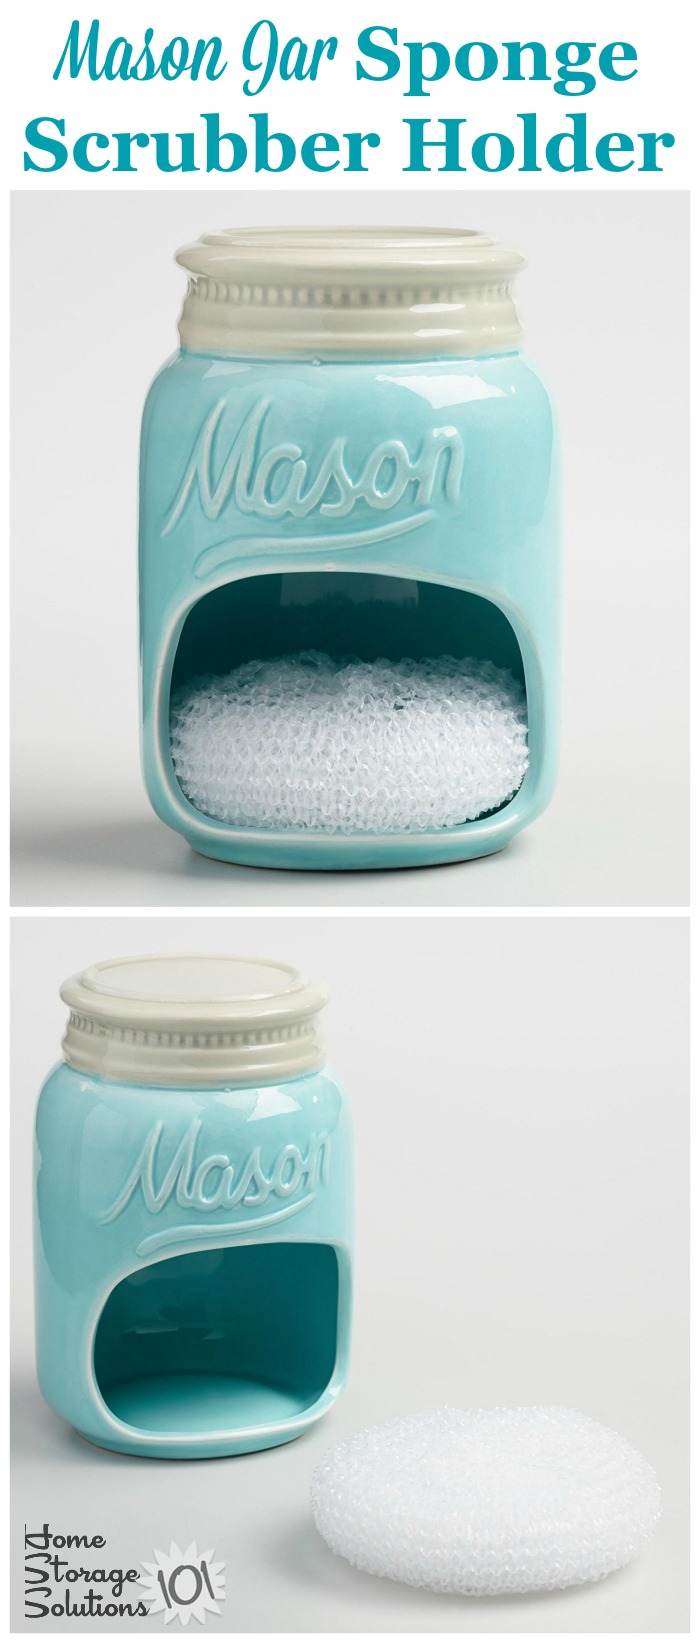 10 Mason Jar Gift Ideas For Your Kitchen: Beautiful & Useful